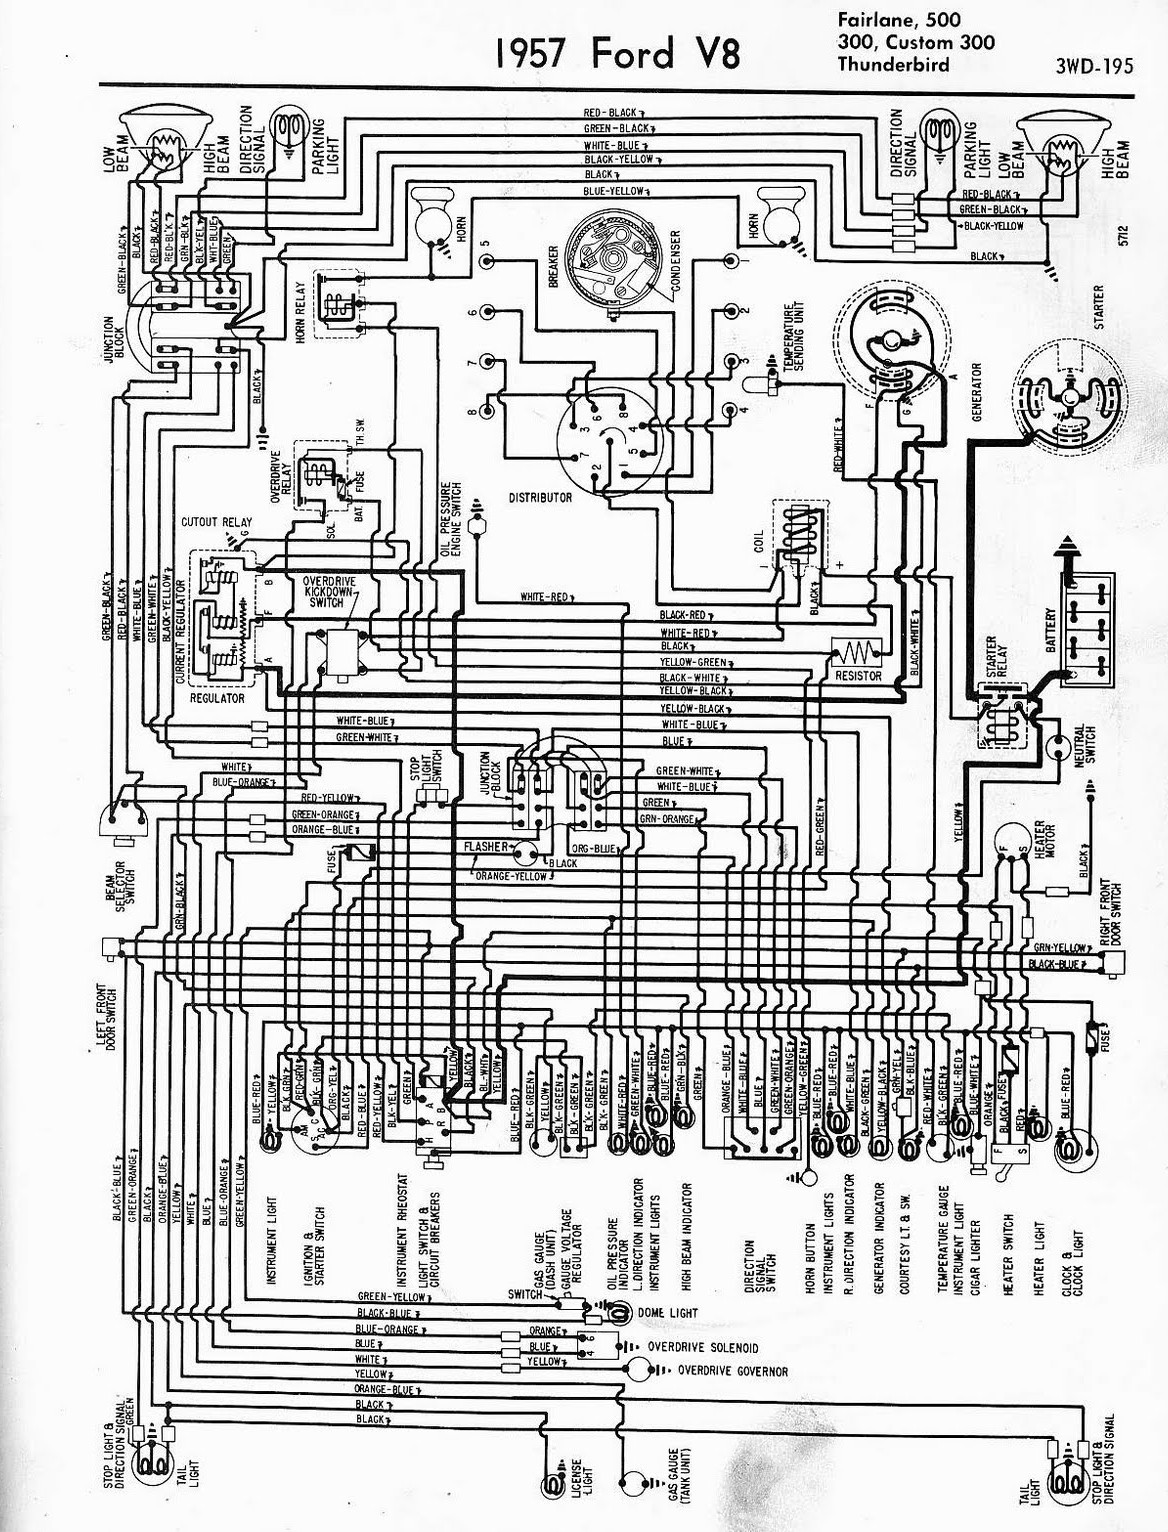 wiring diagrams of 1960 ford v8 thunderbird today wiring diagram1962 thunderbird fuse diagram wiring diagram schema [ 1168 x 1532 Pixel ]